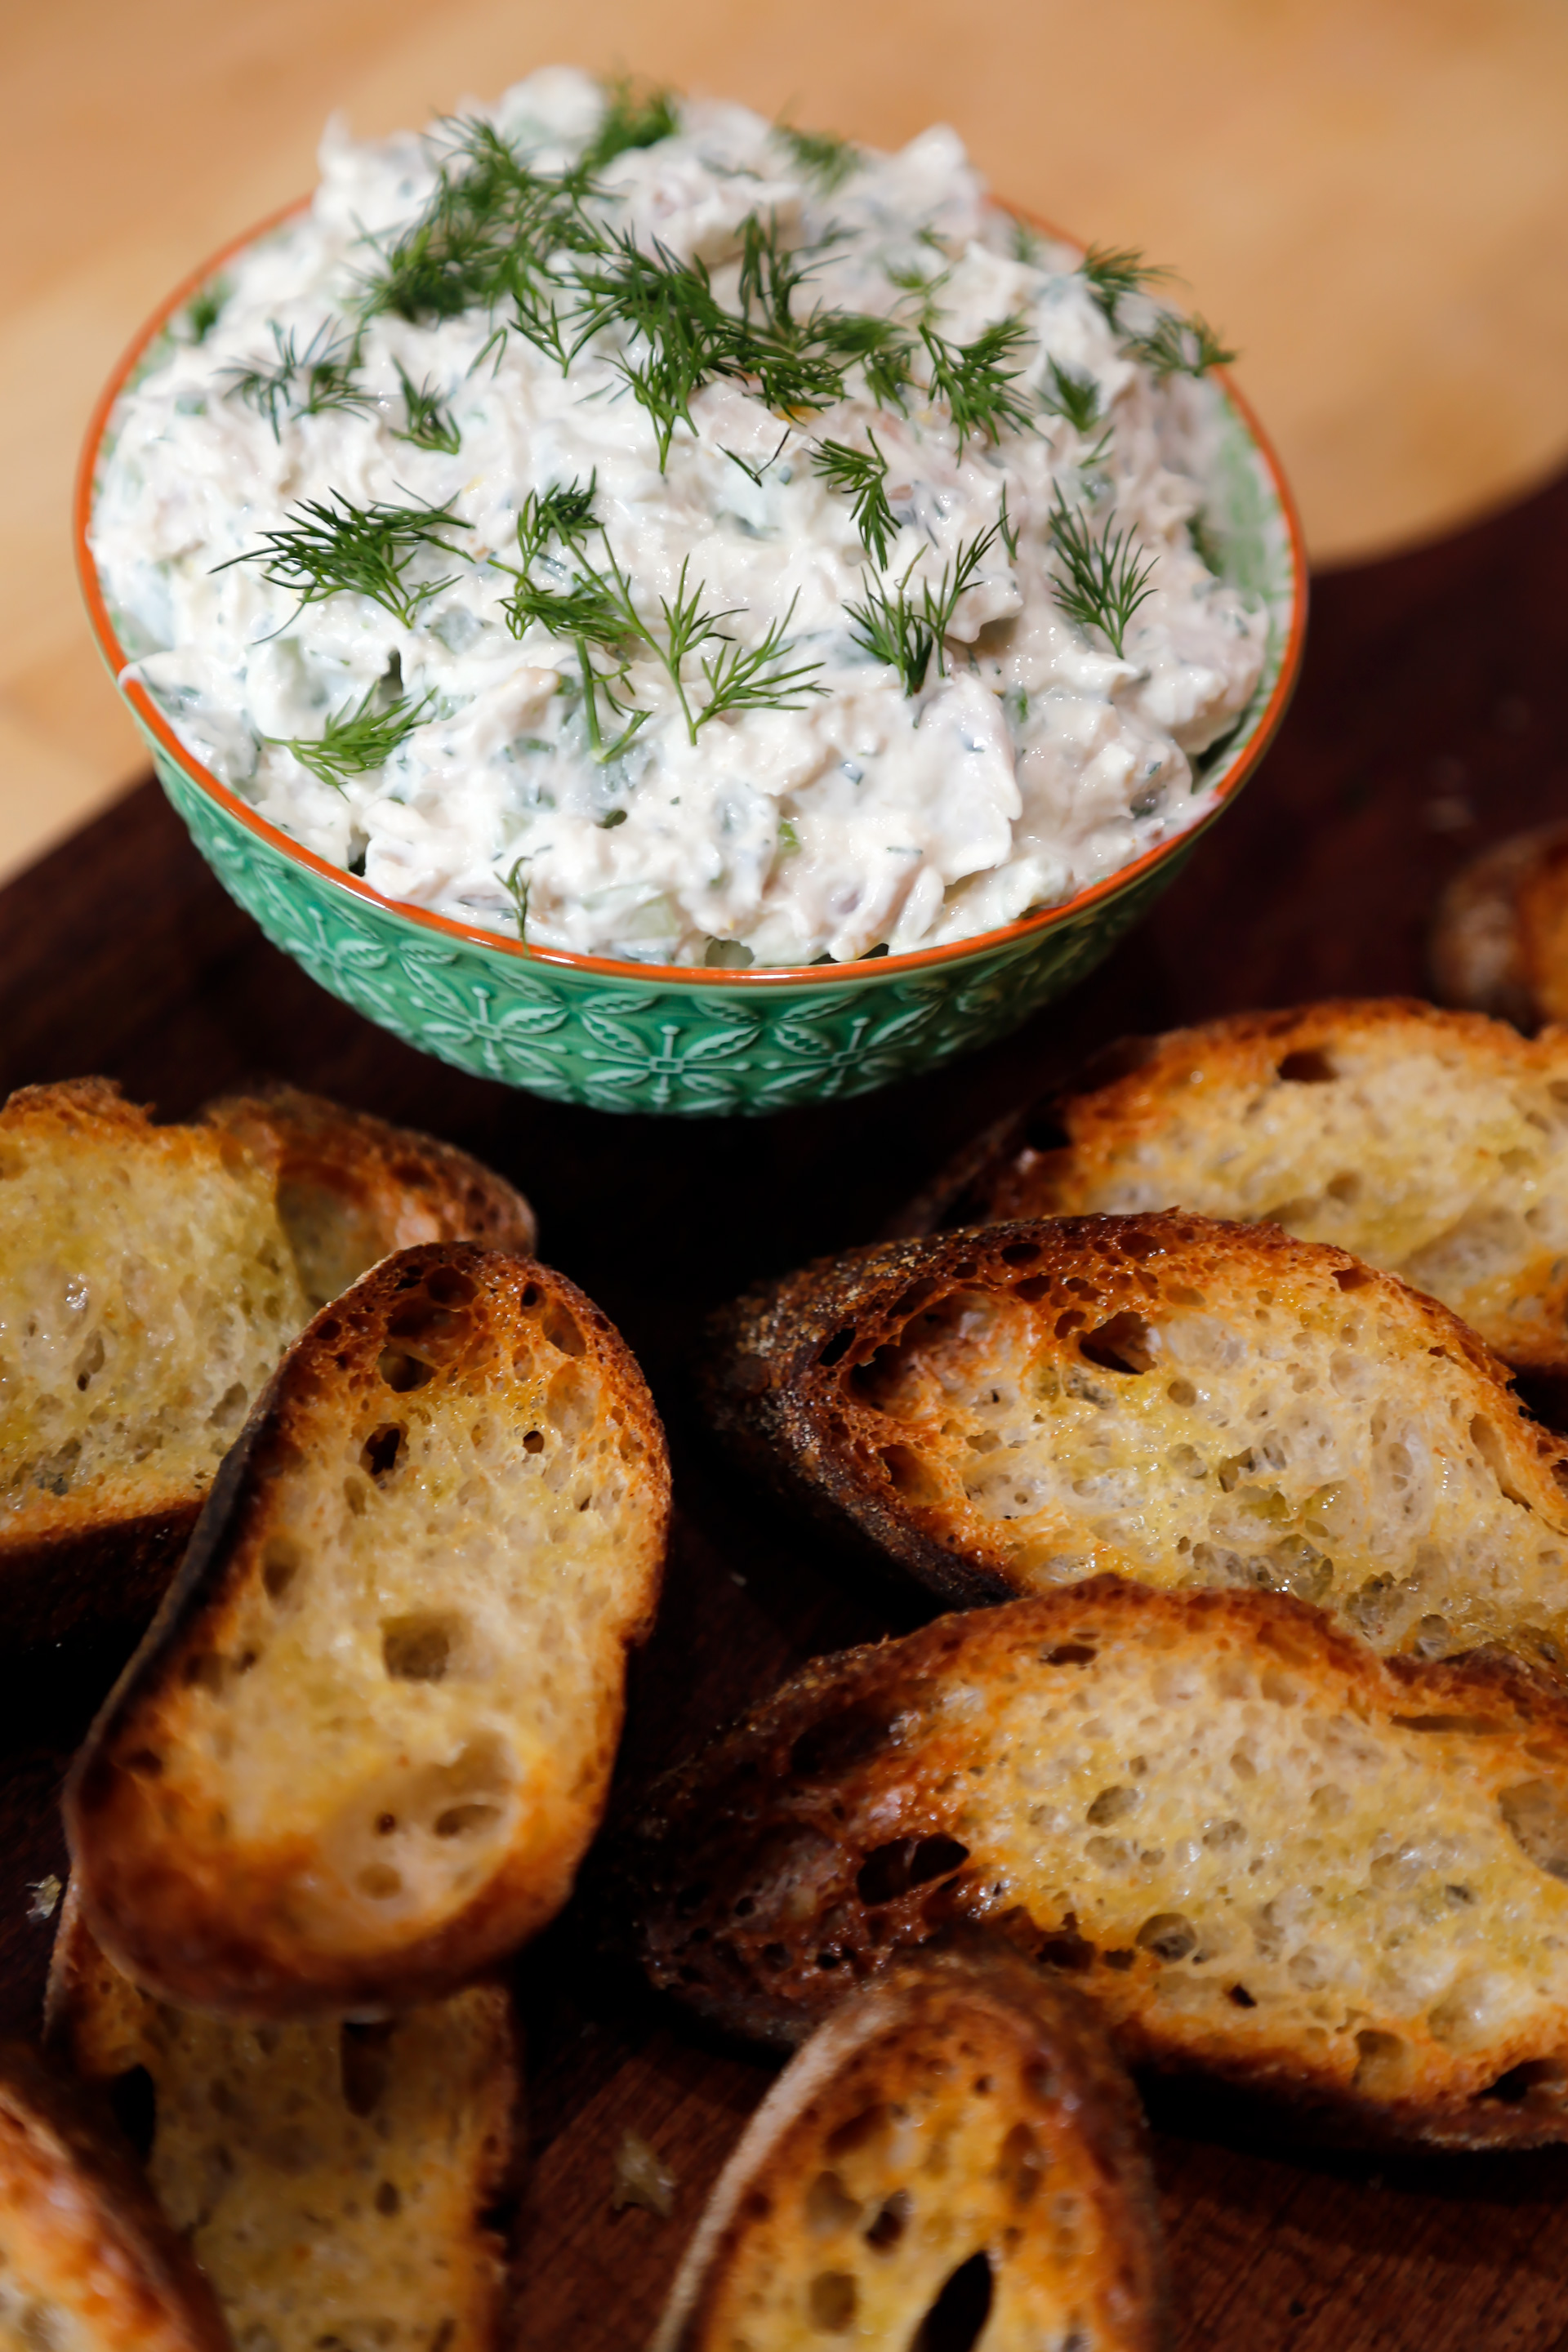 Garnish with dill and serve the Smoked Trout-Herb Dip with Crostini.